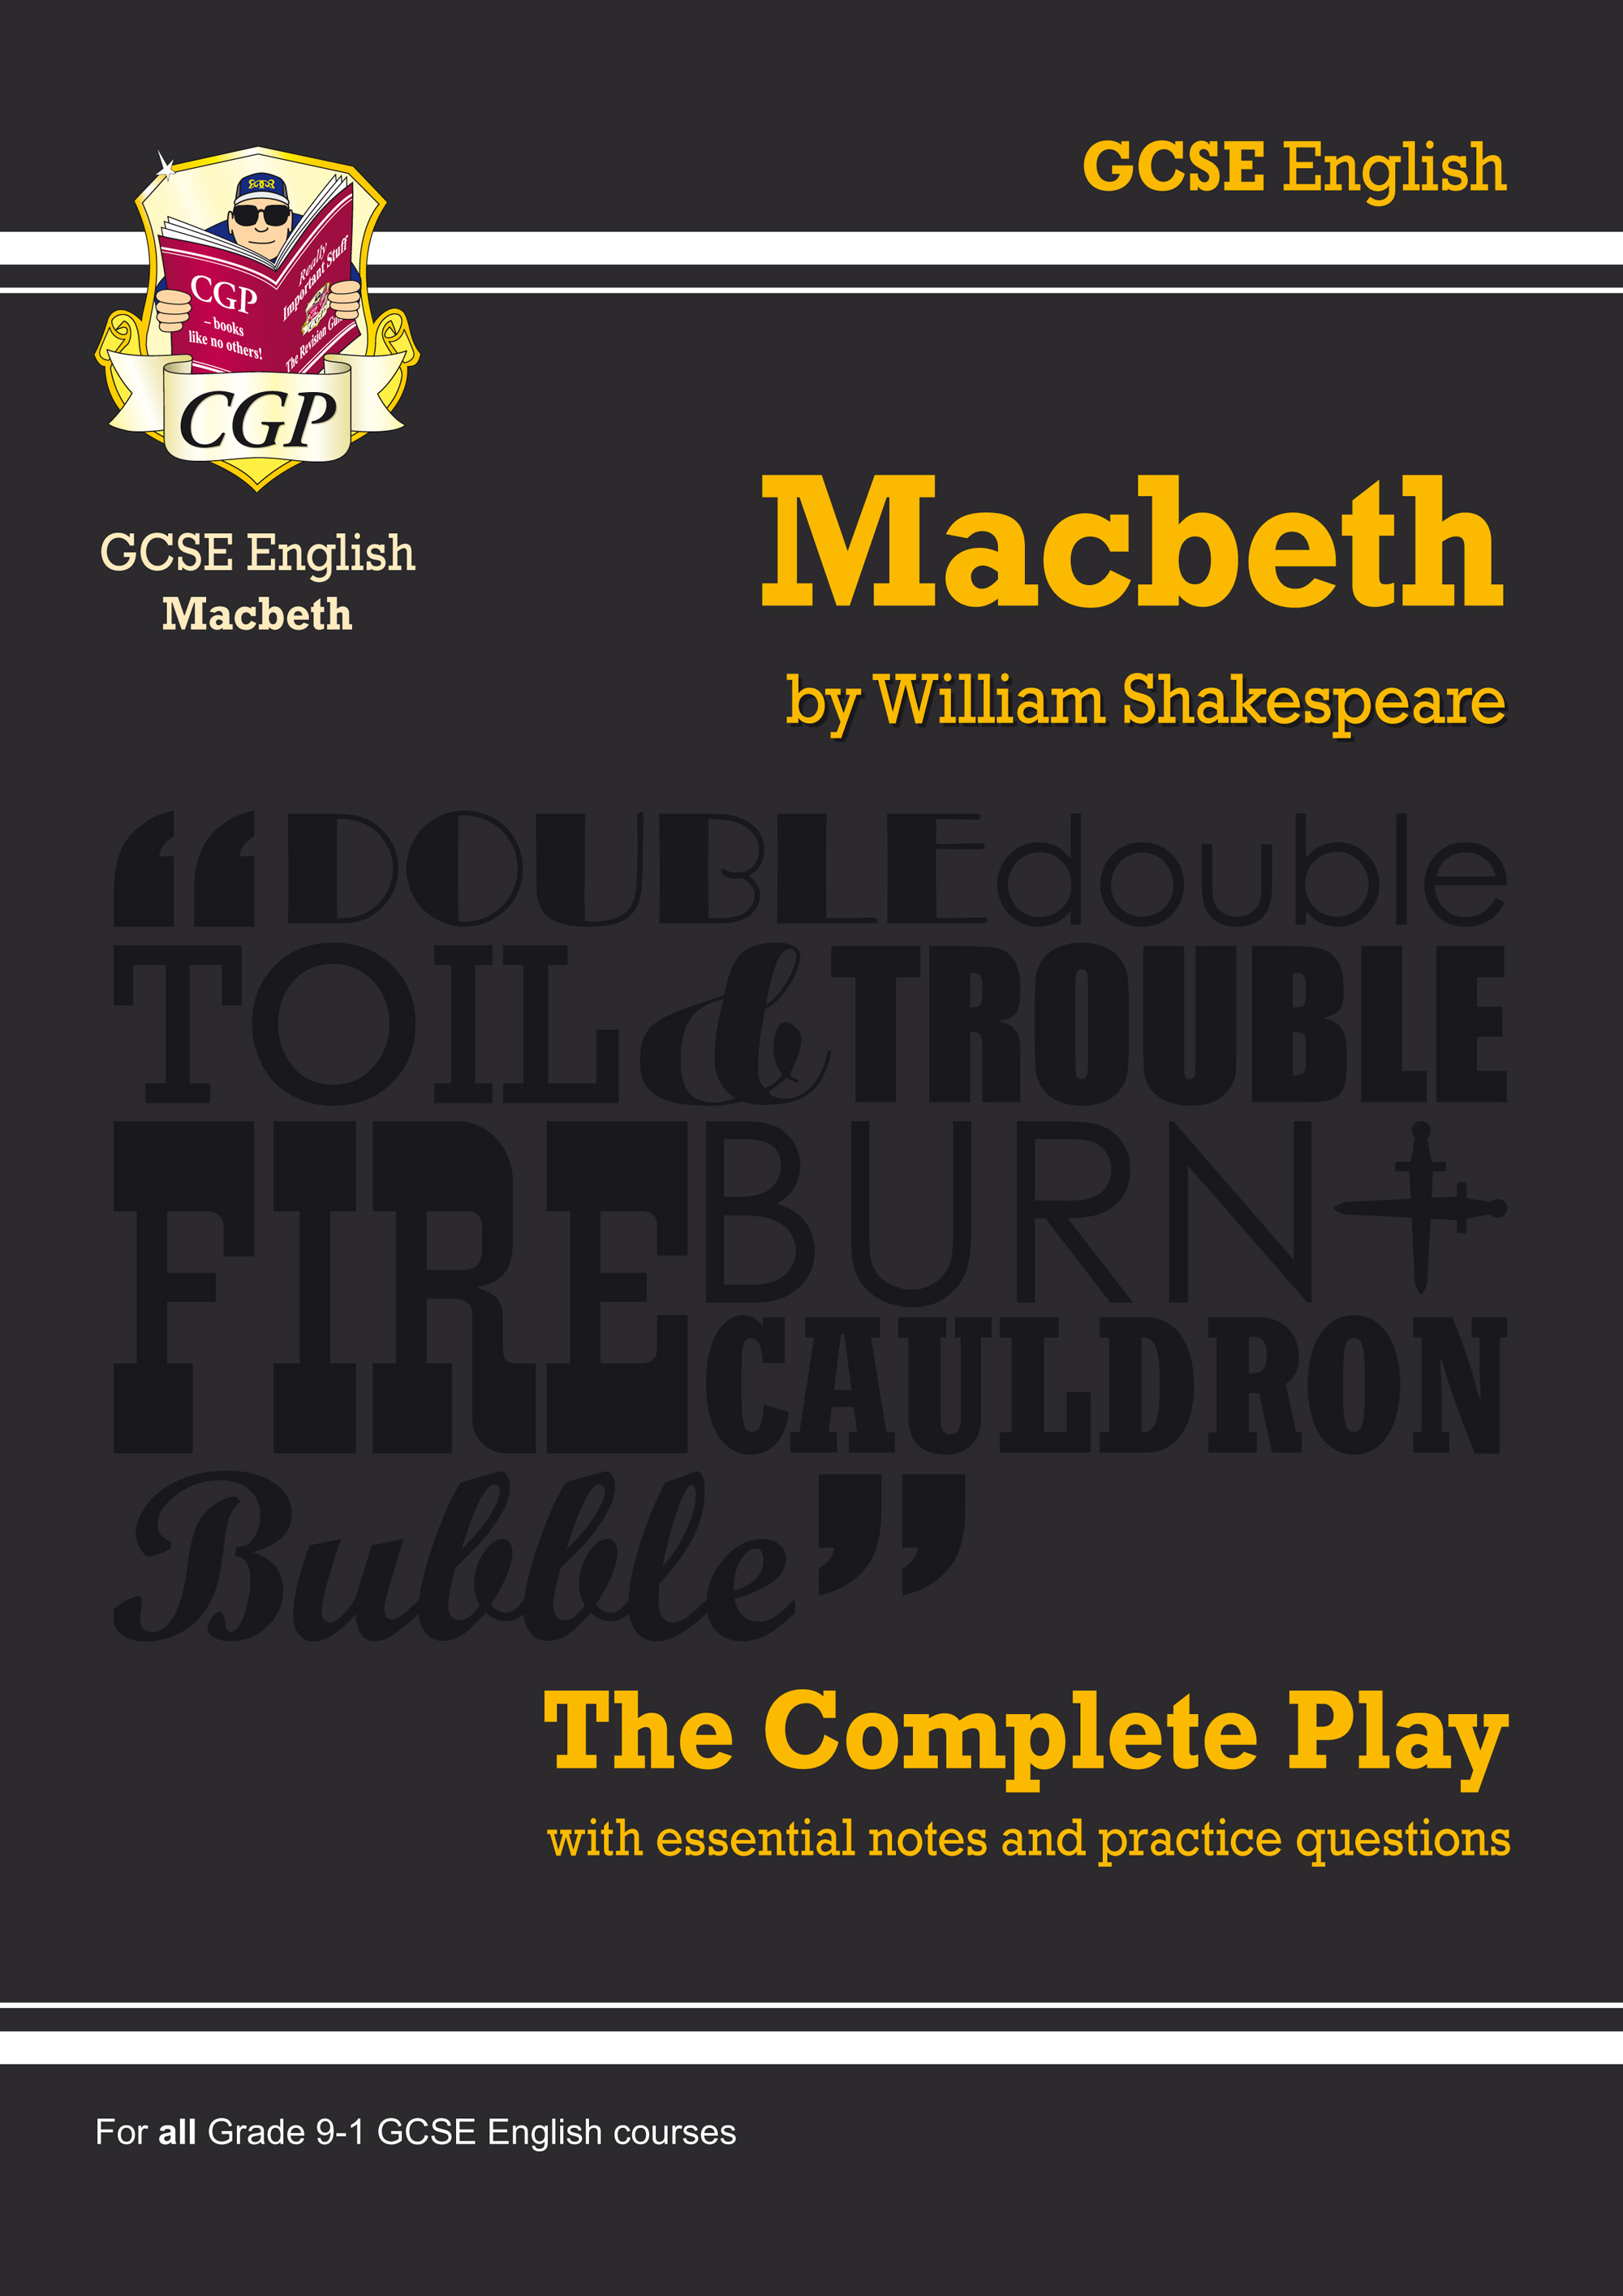 EPM44 - Grade 9-1 GCSE English Macbeth - The Complete Play